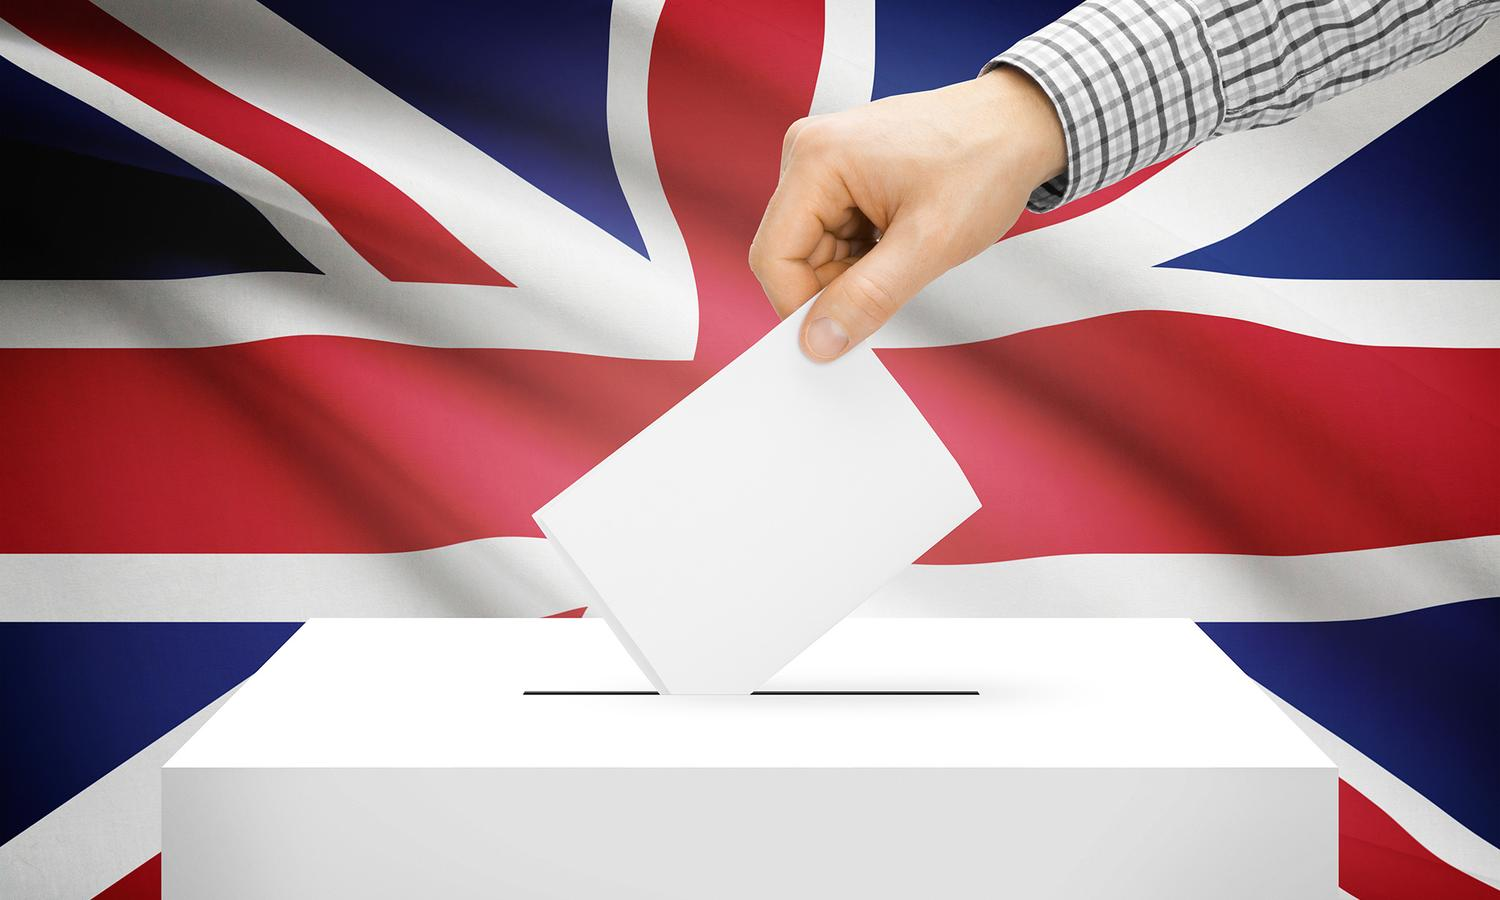 UK General Election disrupted by terrorism for second time within two weeks – True Pundit